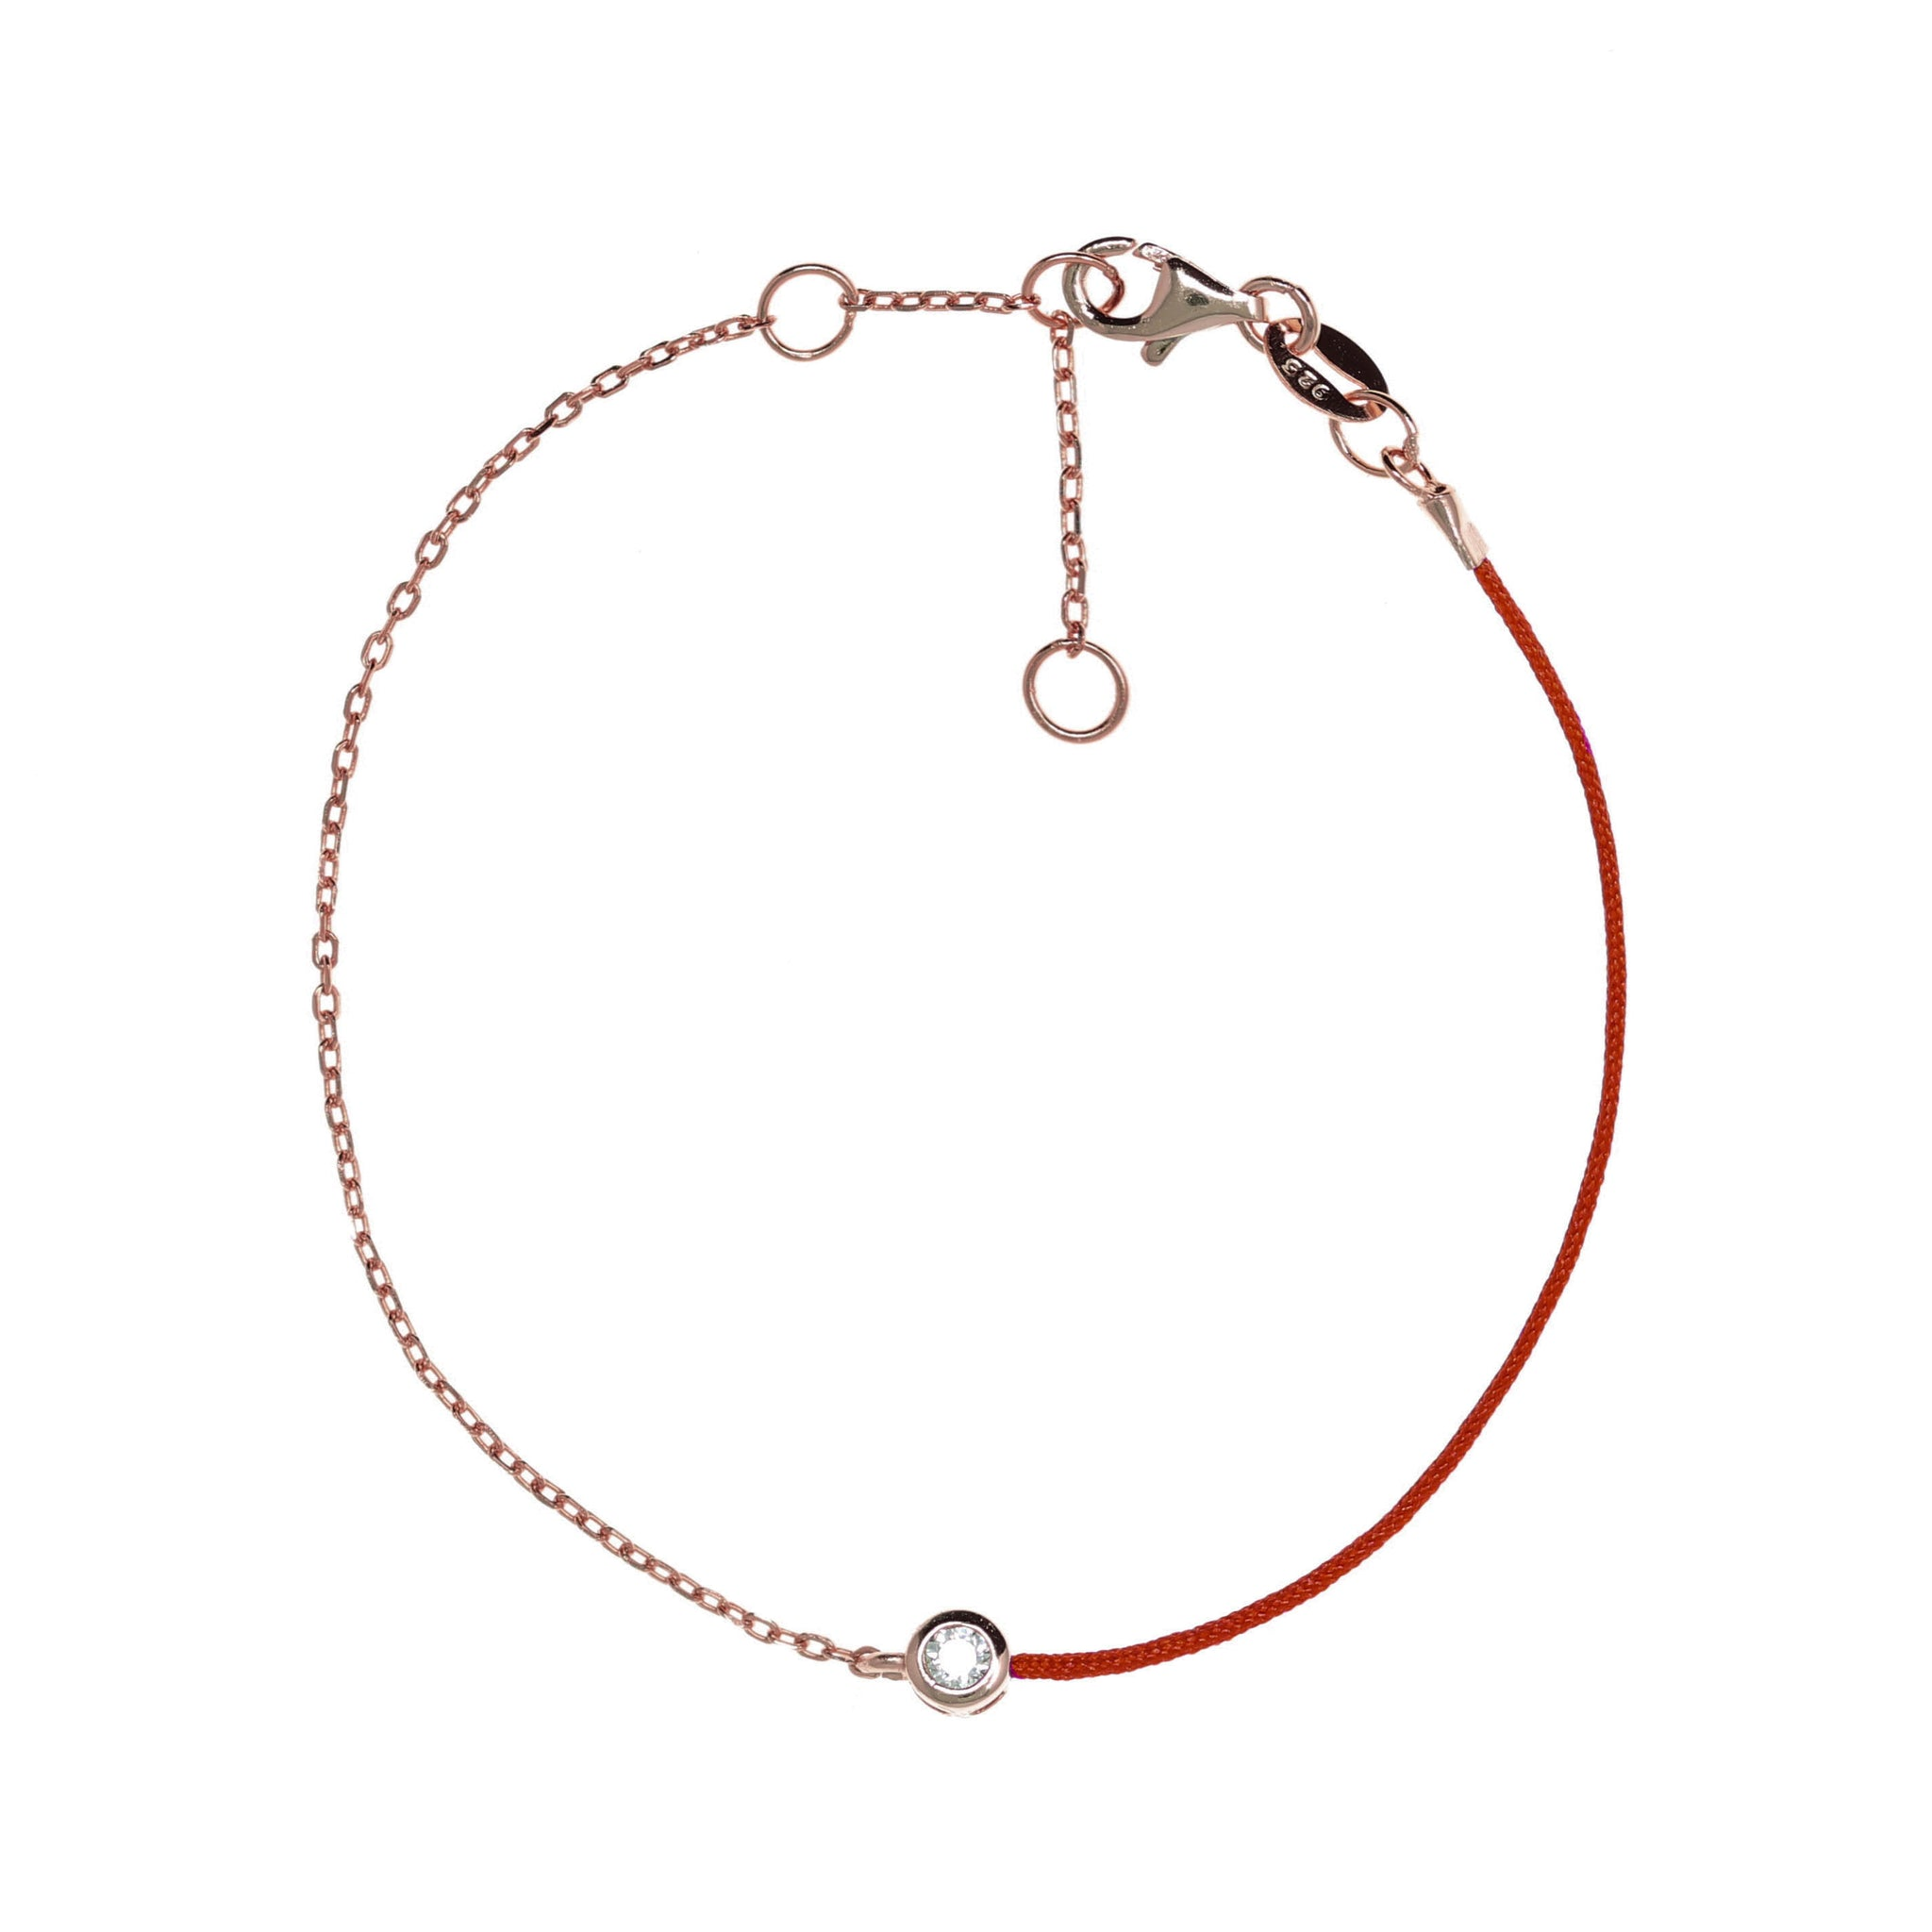 BF-2/RR - Chain and String Bracelet